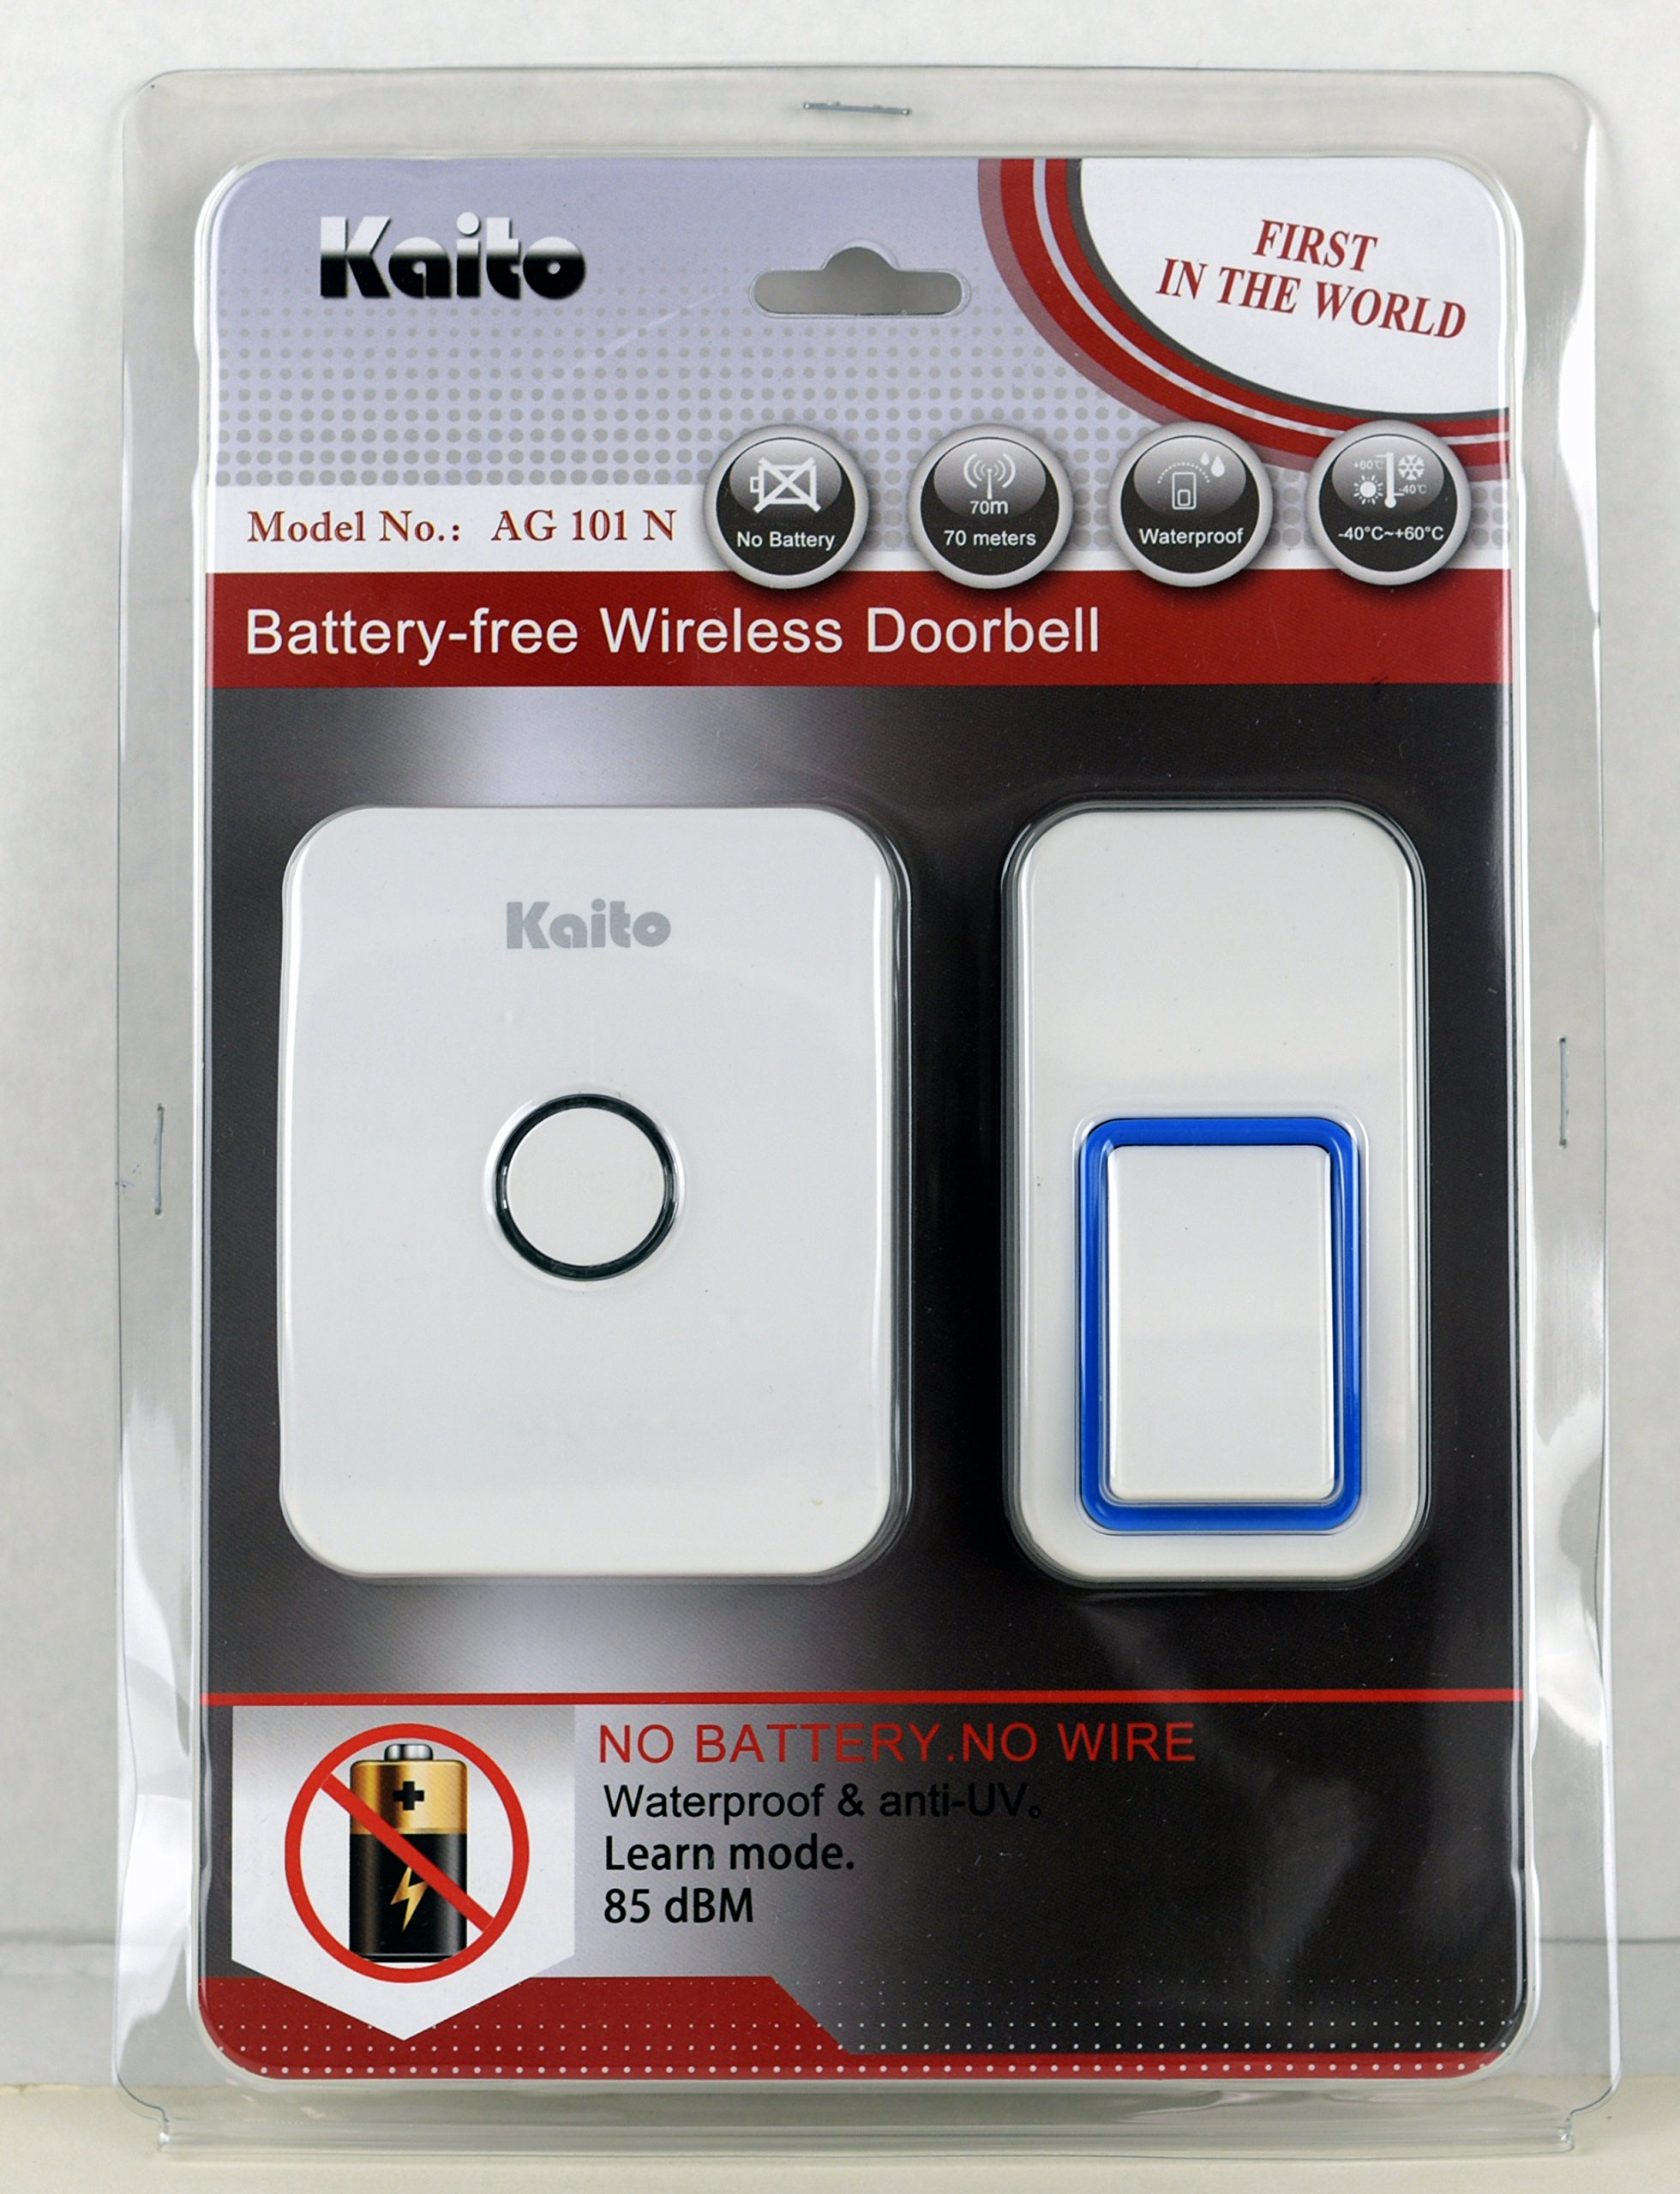 Kaito Wireless Doorbell No Battery Needed for both receiver and transmitter, Battery Free Door Chime with 25 Ring Tones, Waterproof, Synchronize and Work in Pairs, Easy Setup by Kaito